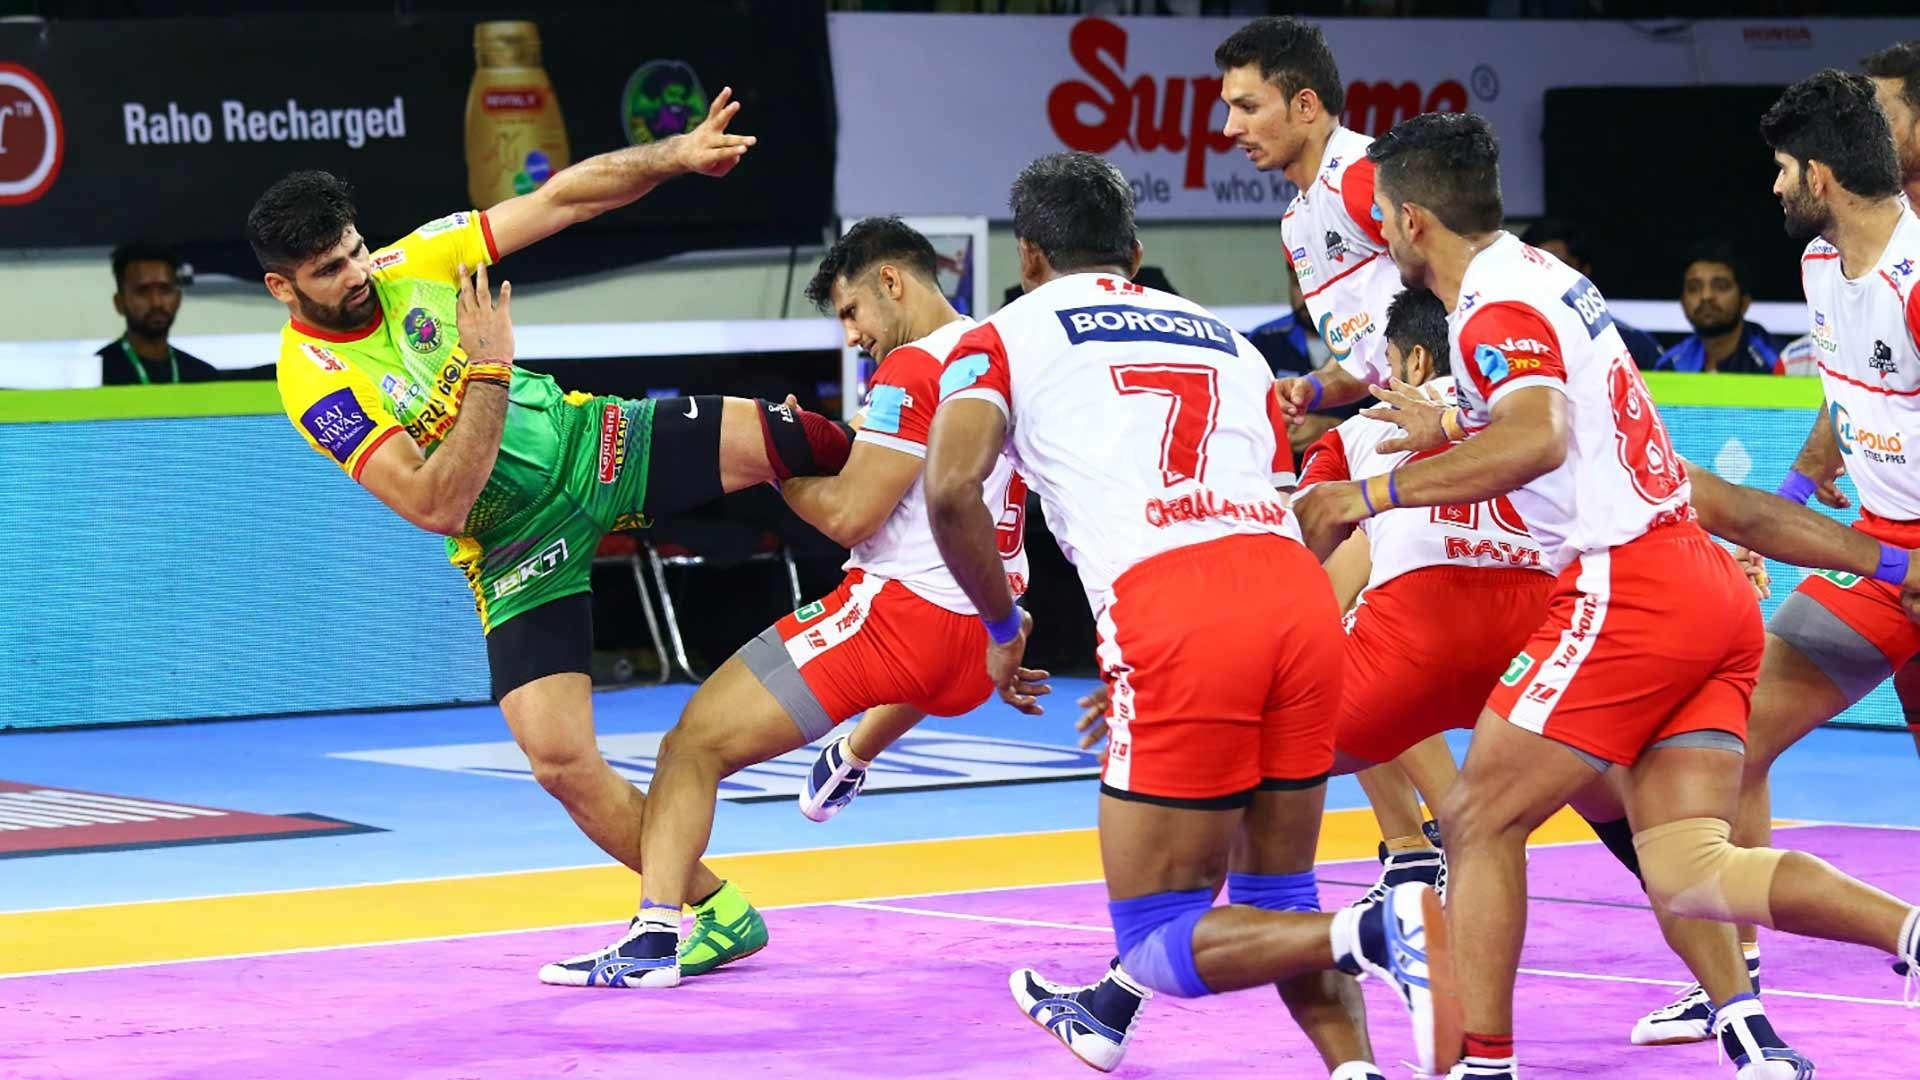 Pardeep Narwal taking 900th raid point of PKL carrier and 10th raid point of the match